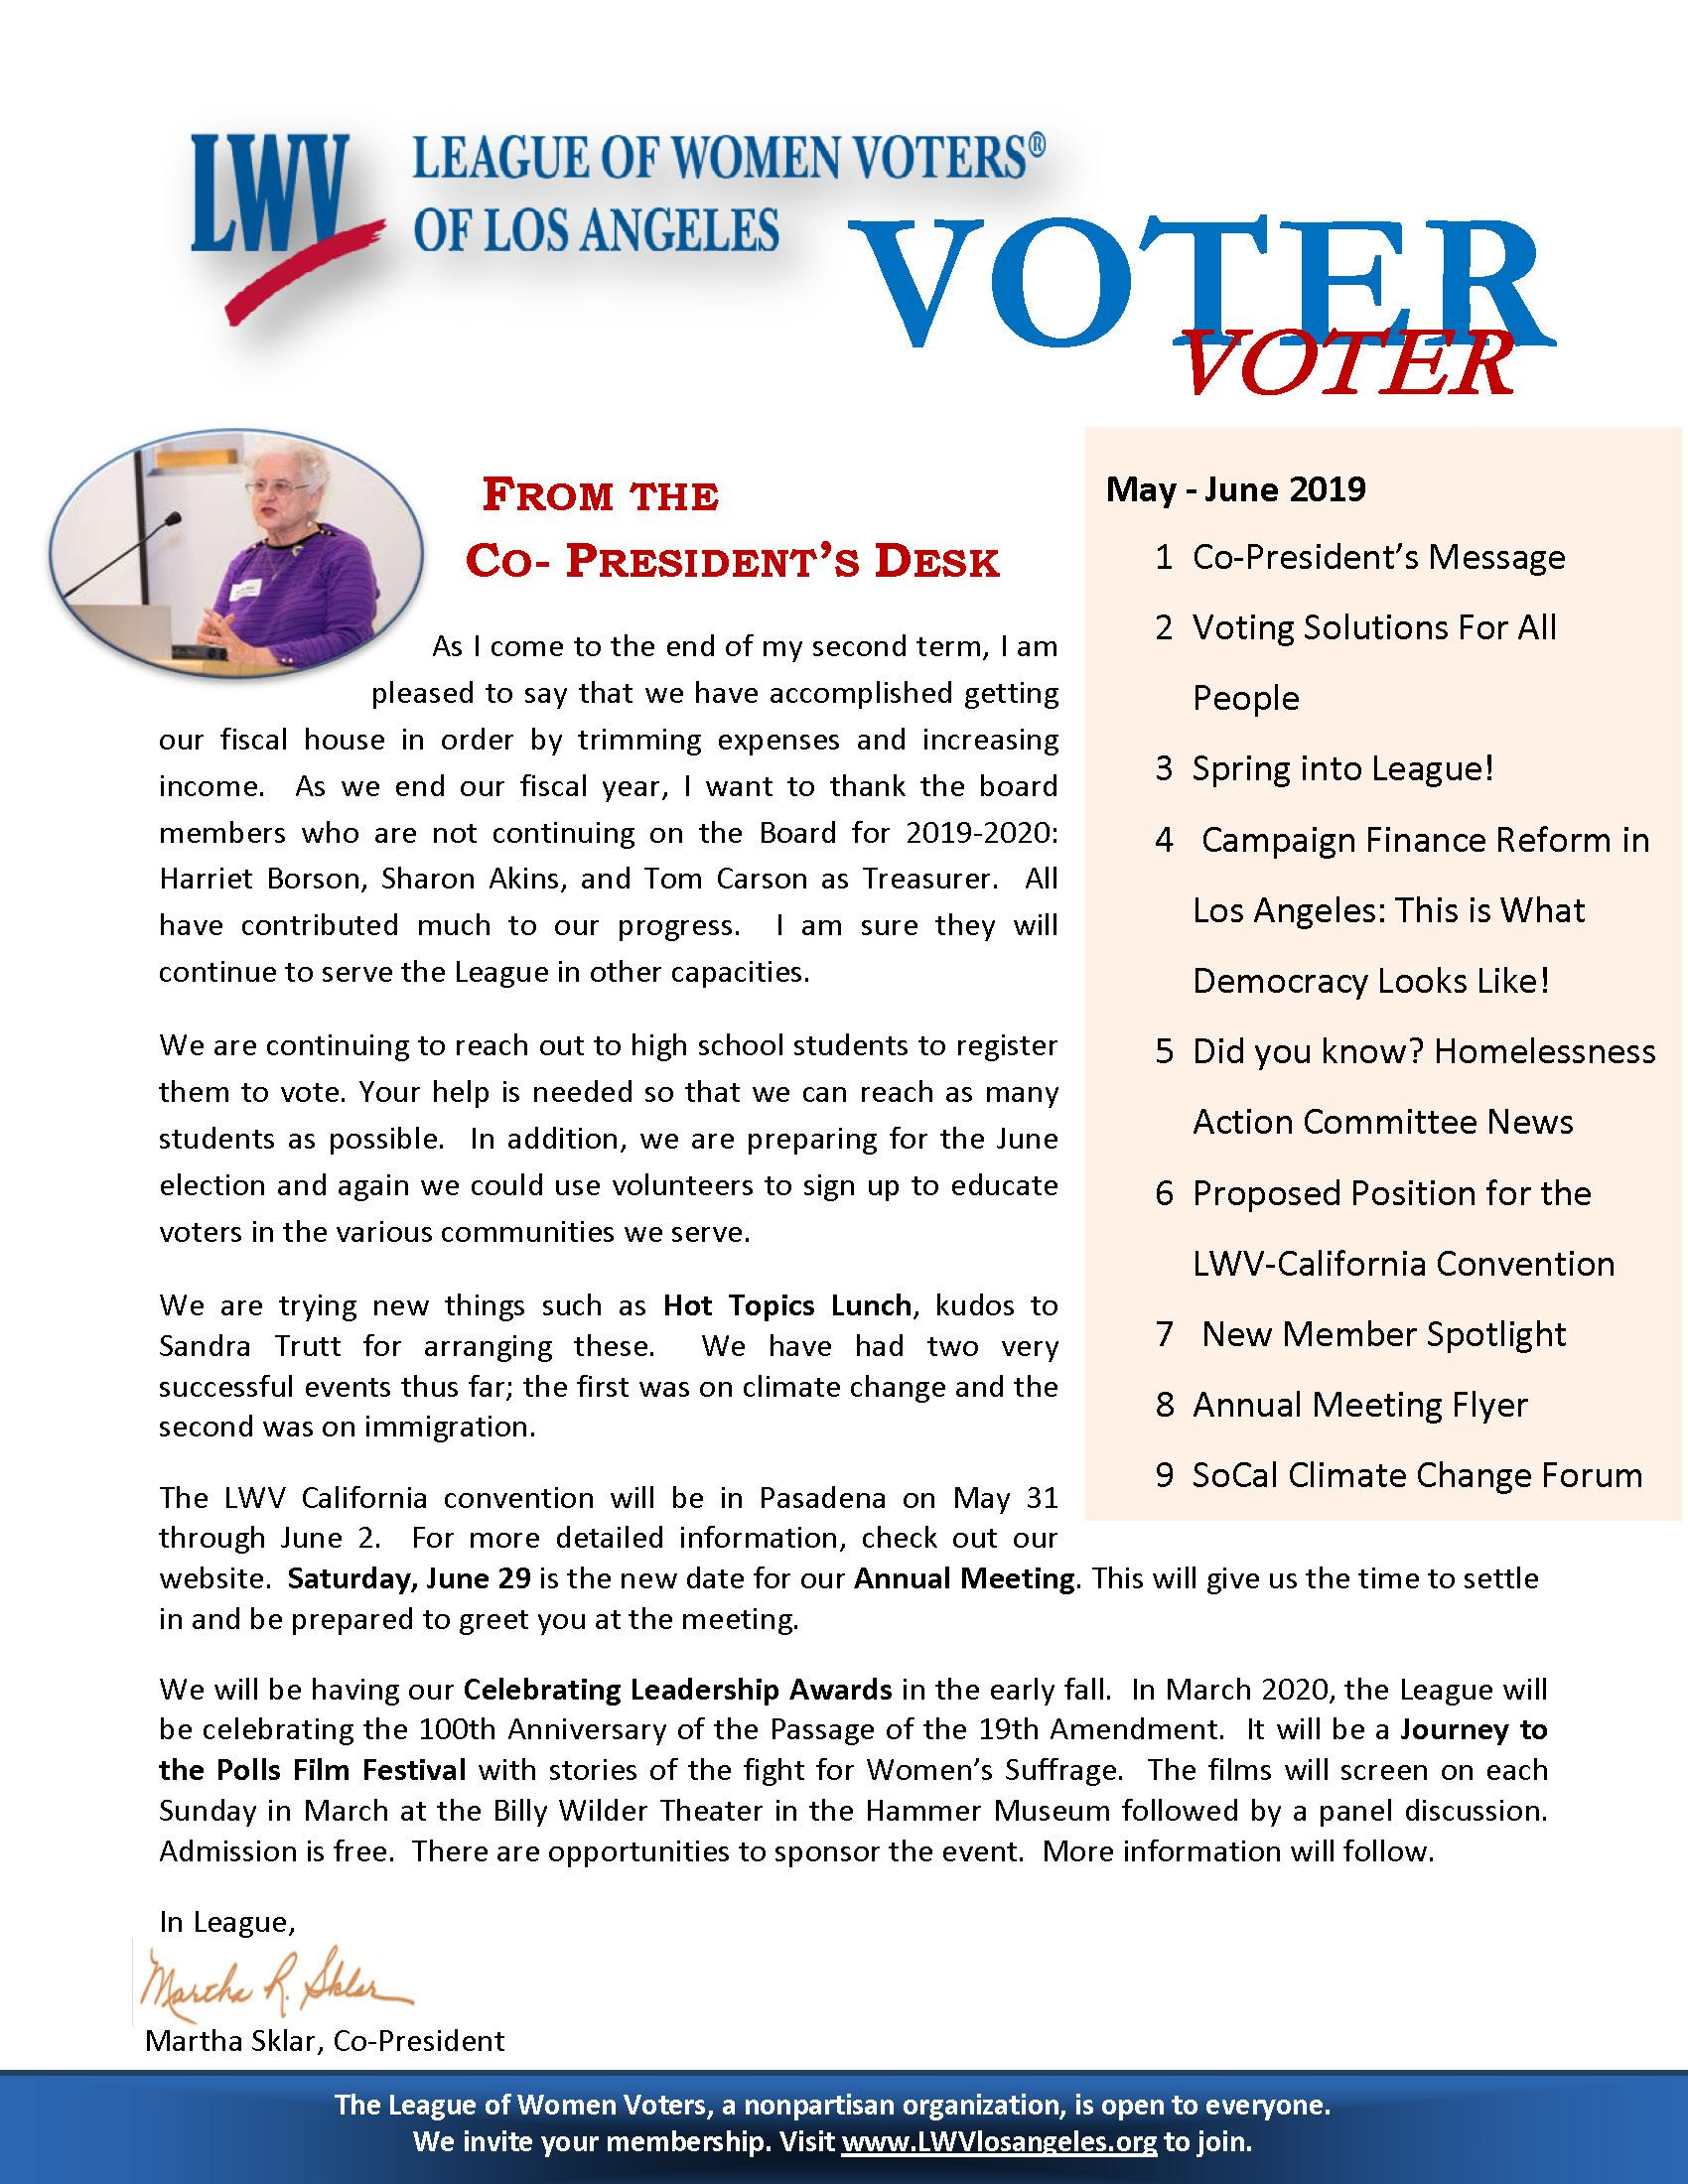 May - June 2019 VOTER newsletter